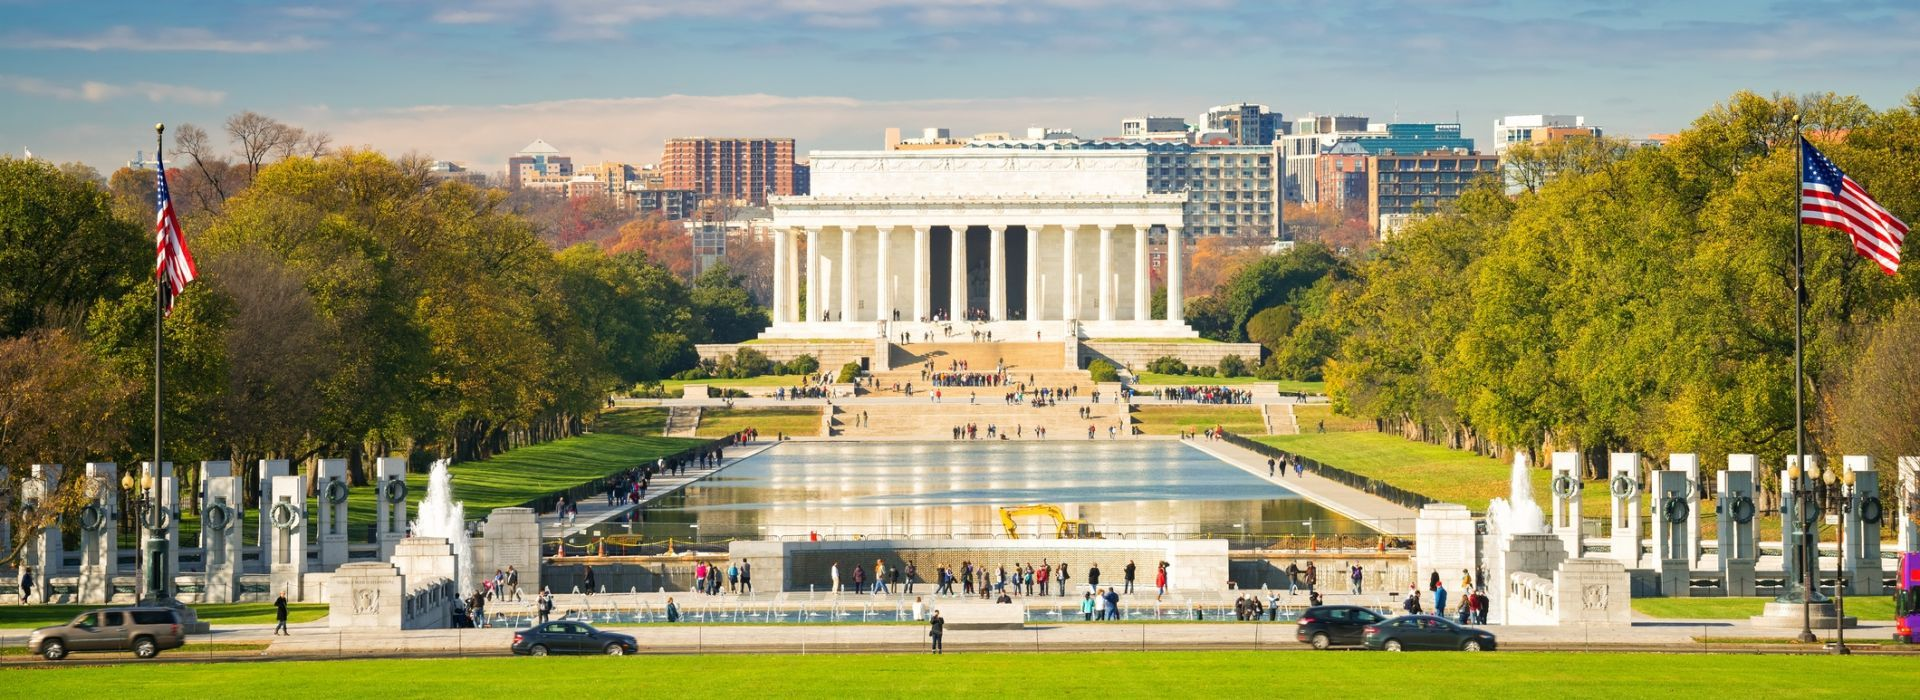 City sightseeing Tours in USA